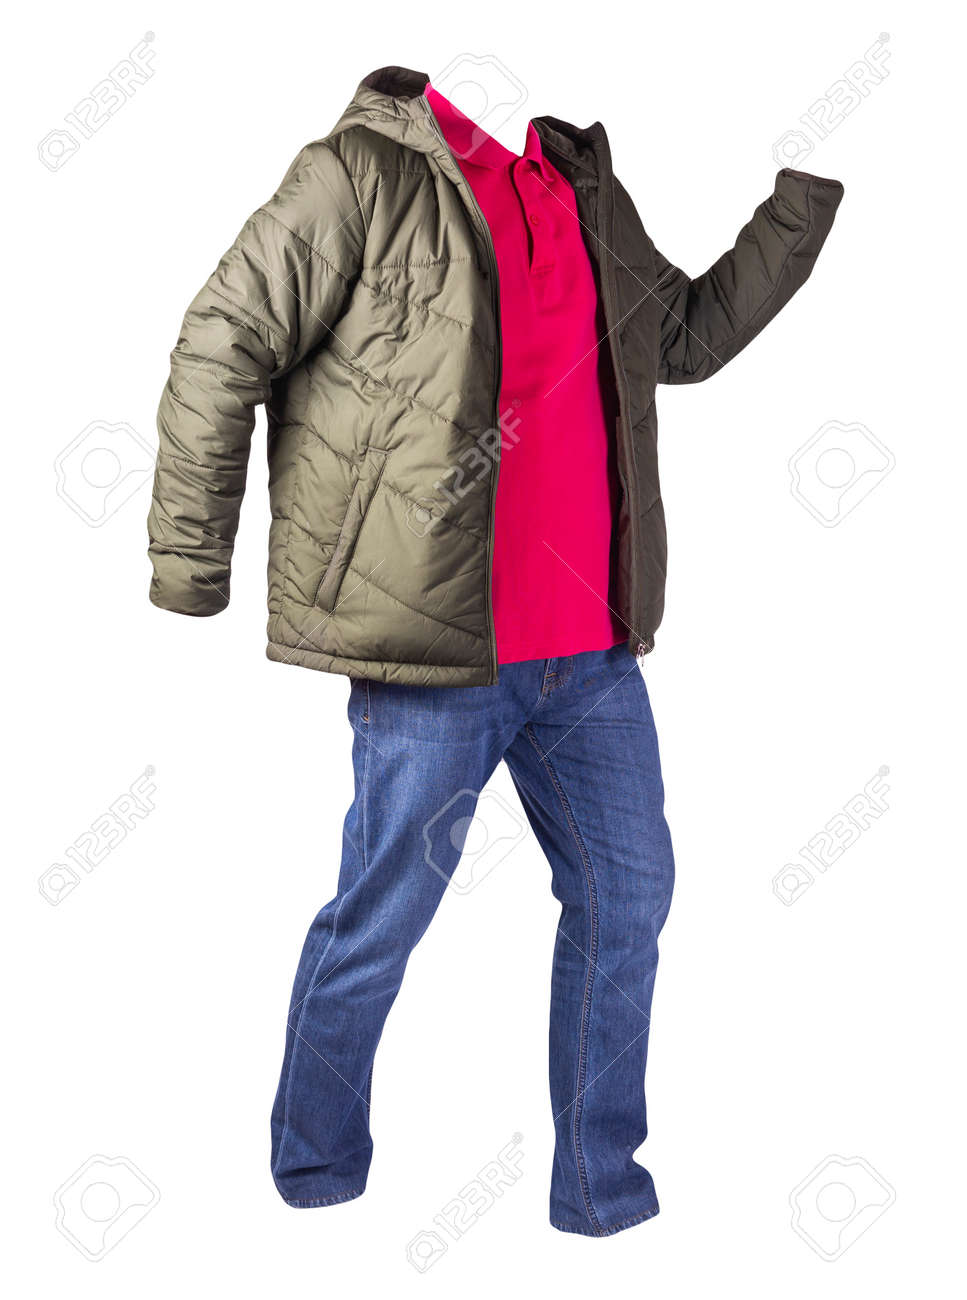 green jacket with zipper, red shirt and blue jeans isolated on white background. casual fashion clothes - 160401212